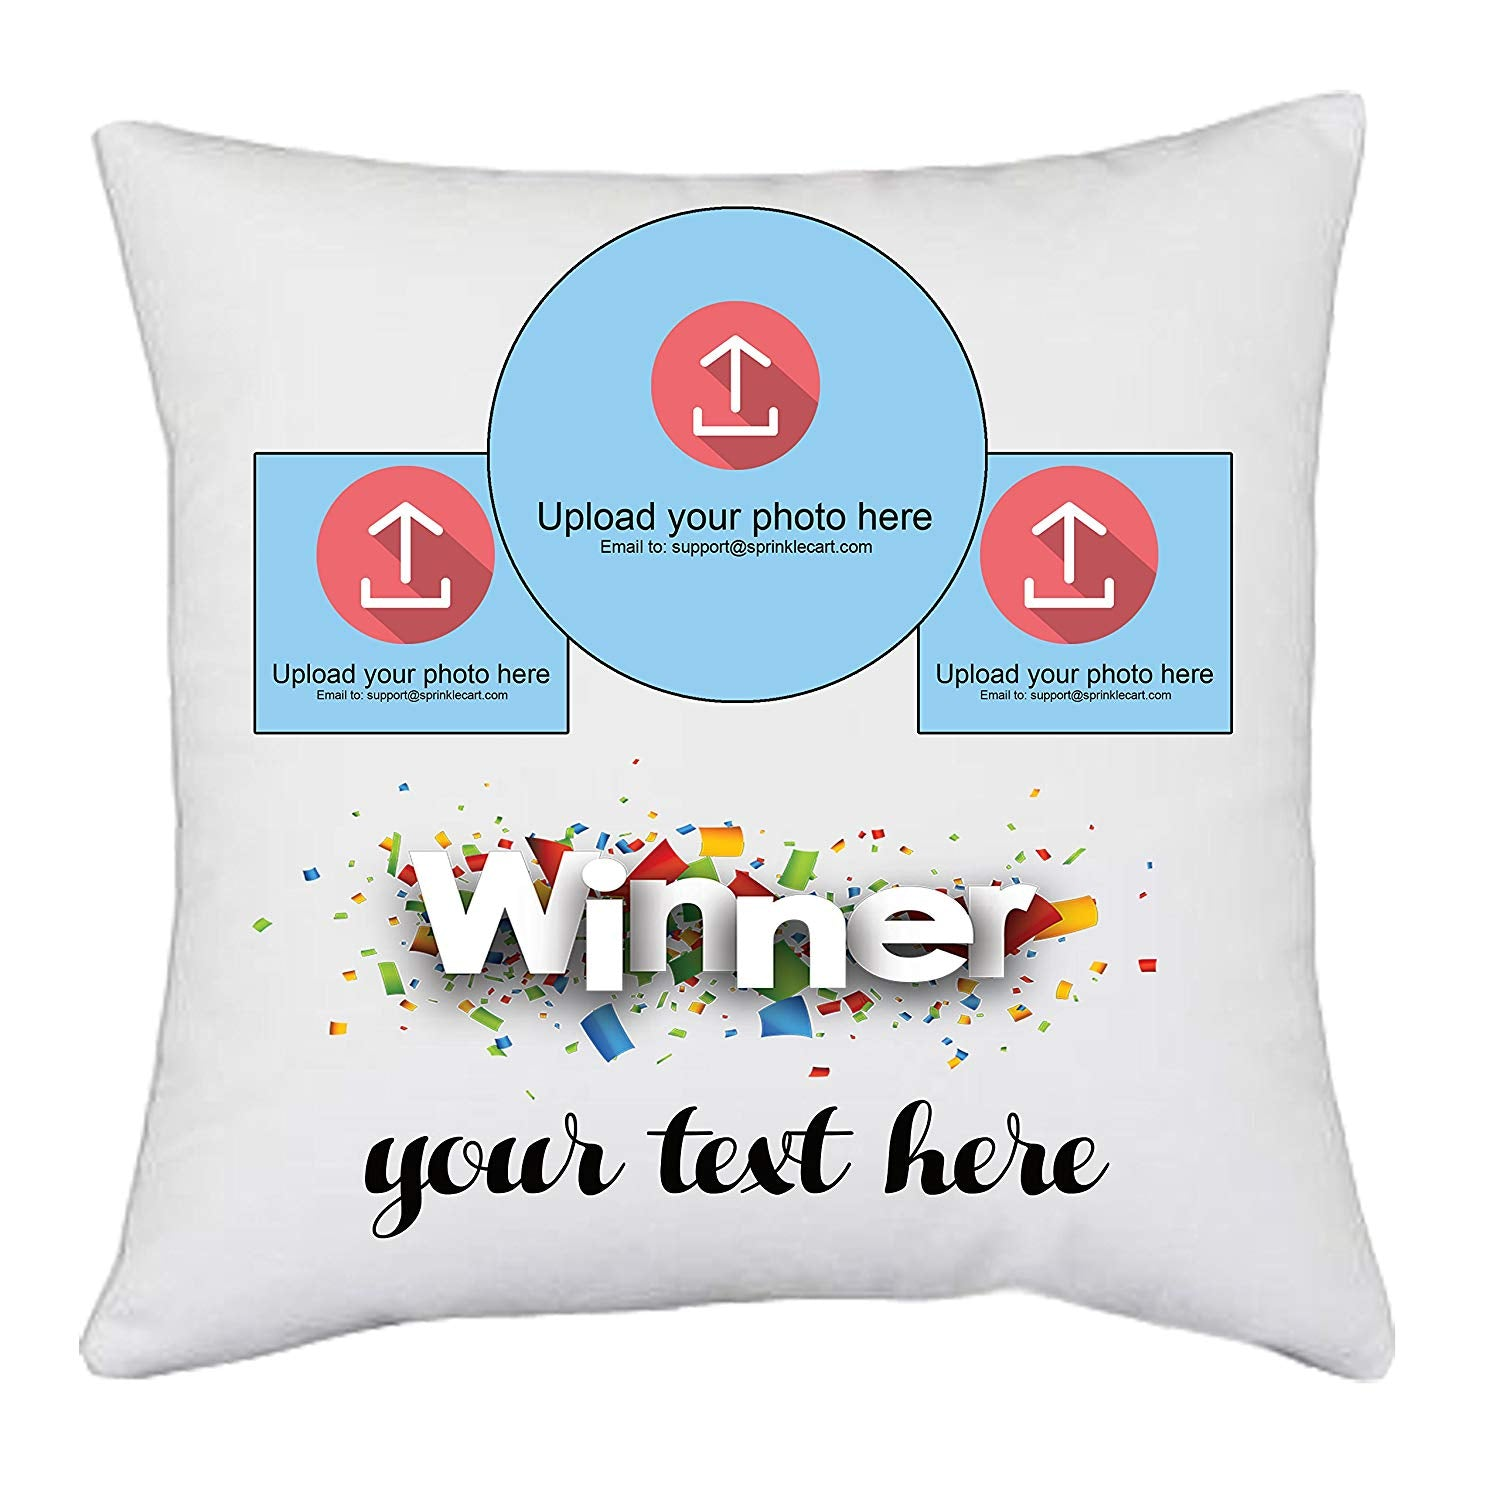 Appreciate The Winner | Personalized Photo & Message Printed Pillow Gift by Sprinklecart for The Achiever | 15″ x 15″ with Filler Insert